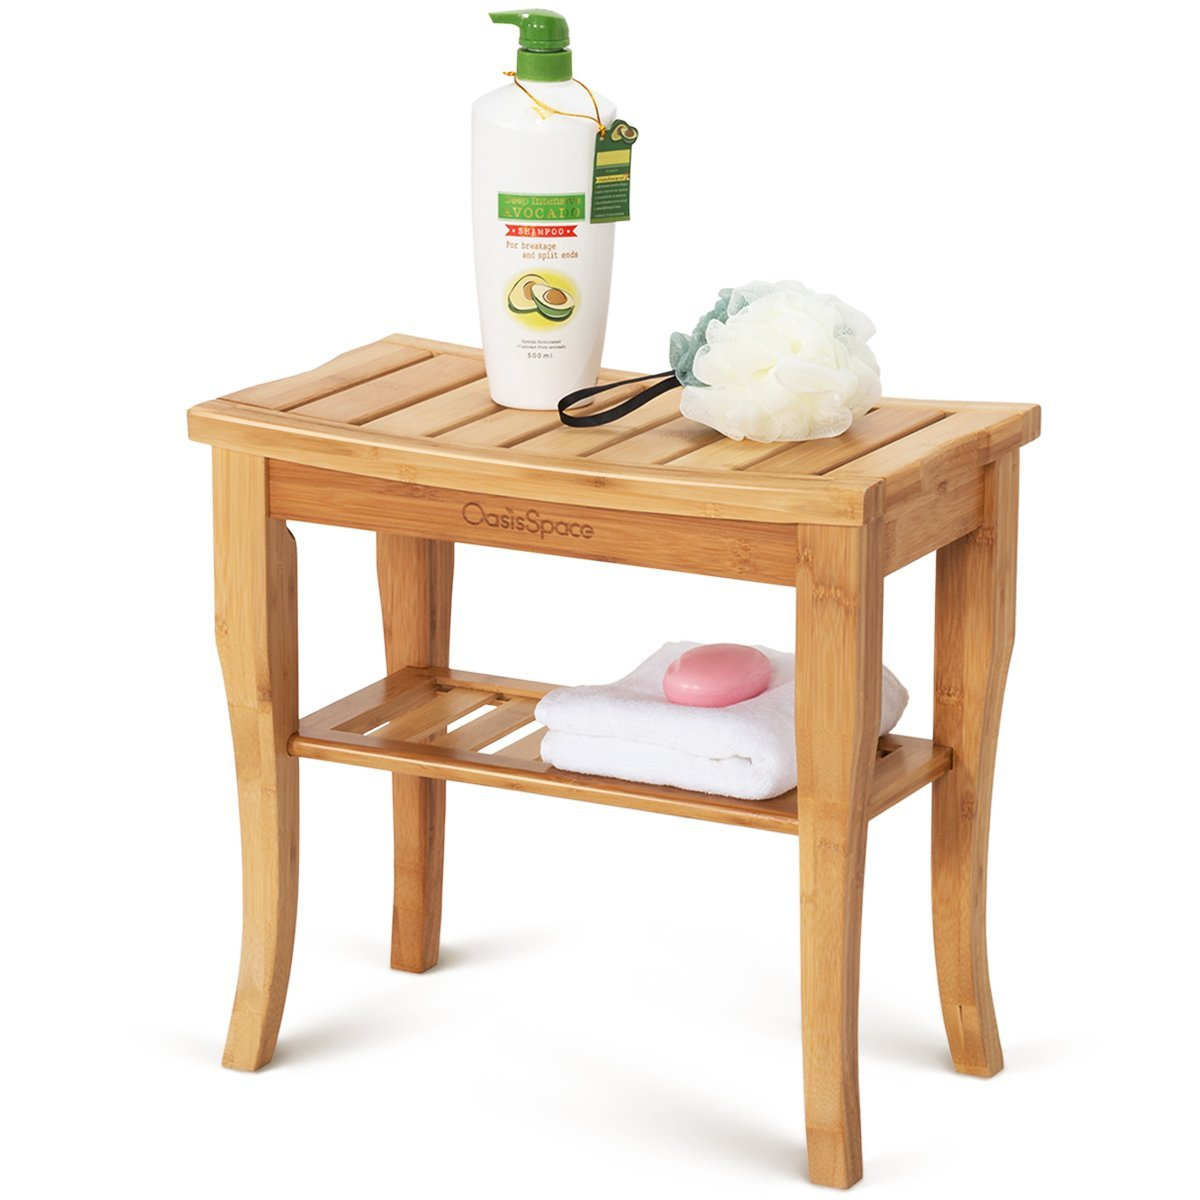 OasisSpace Bamboo Shower Bench, 19'' Waterproof Shower Chair with Storage Shelf, Wood Spa Bath Organizer Seat Stool, Perfect for Indoor or Outdoor